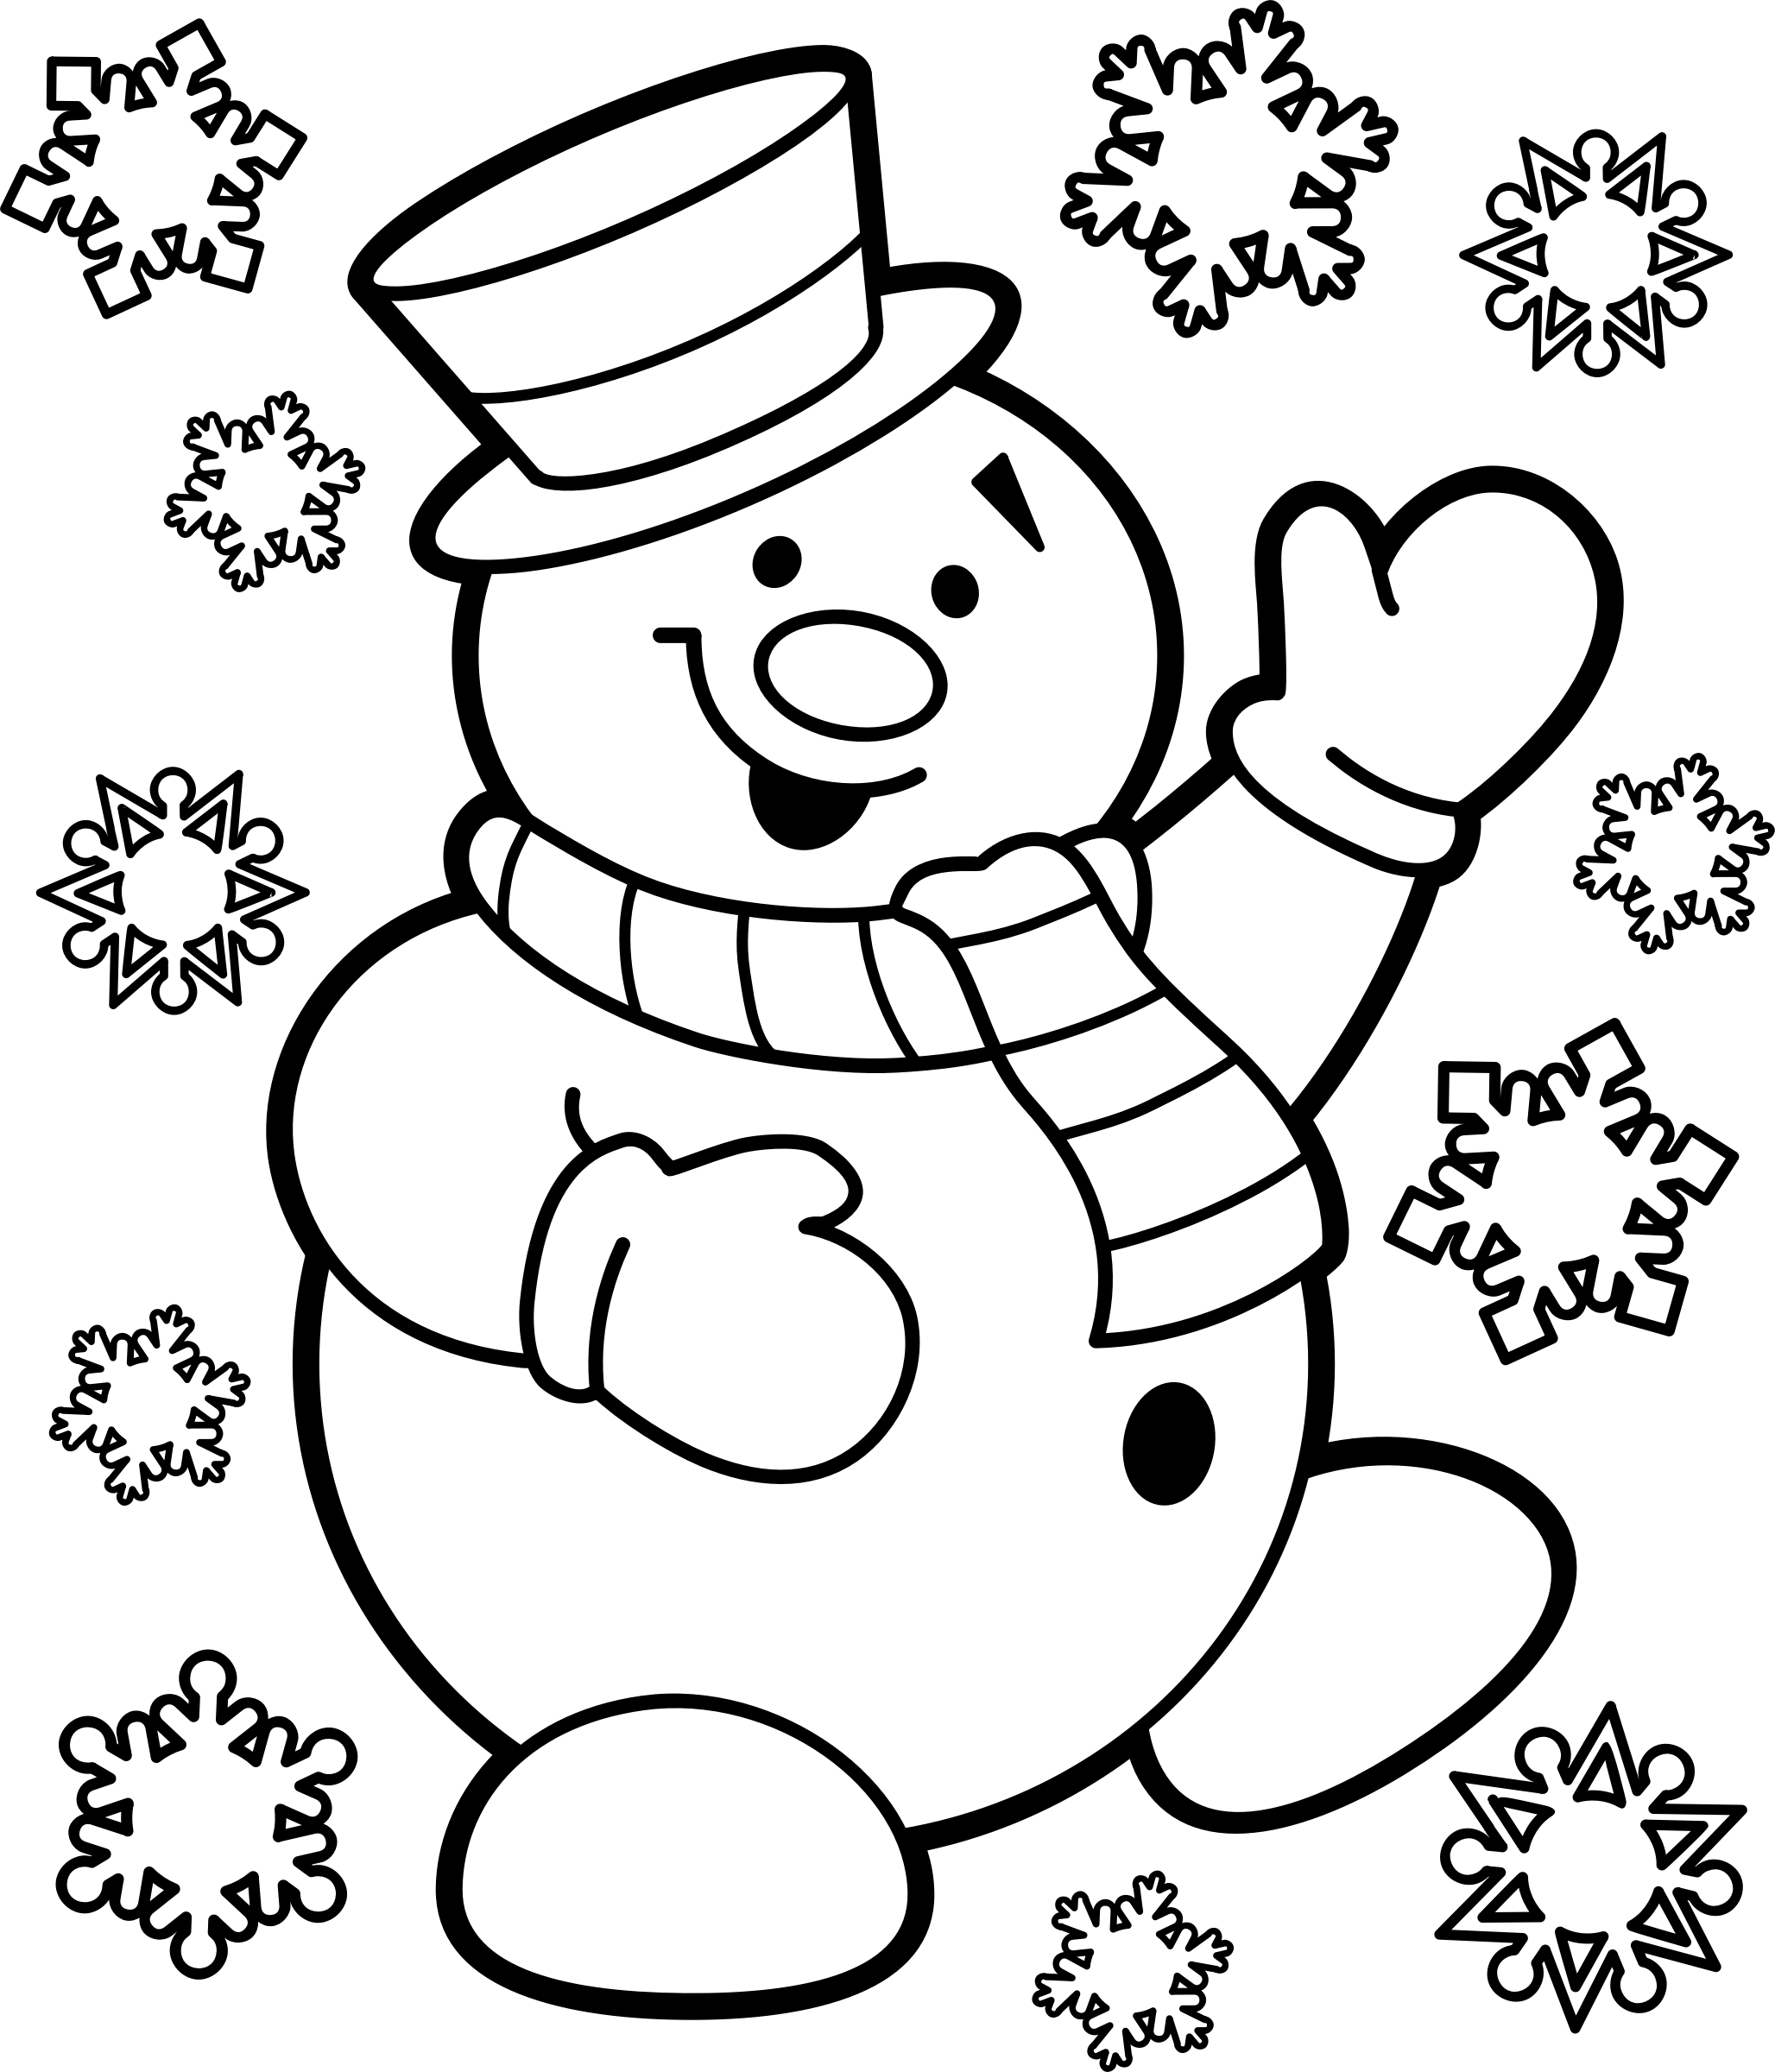 Snowflake and snowman clipart black and white clip freeuse Snowman black and white snowman black and white snowflake clipart ... clip freeuse